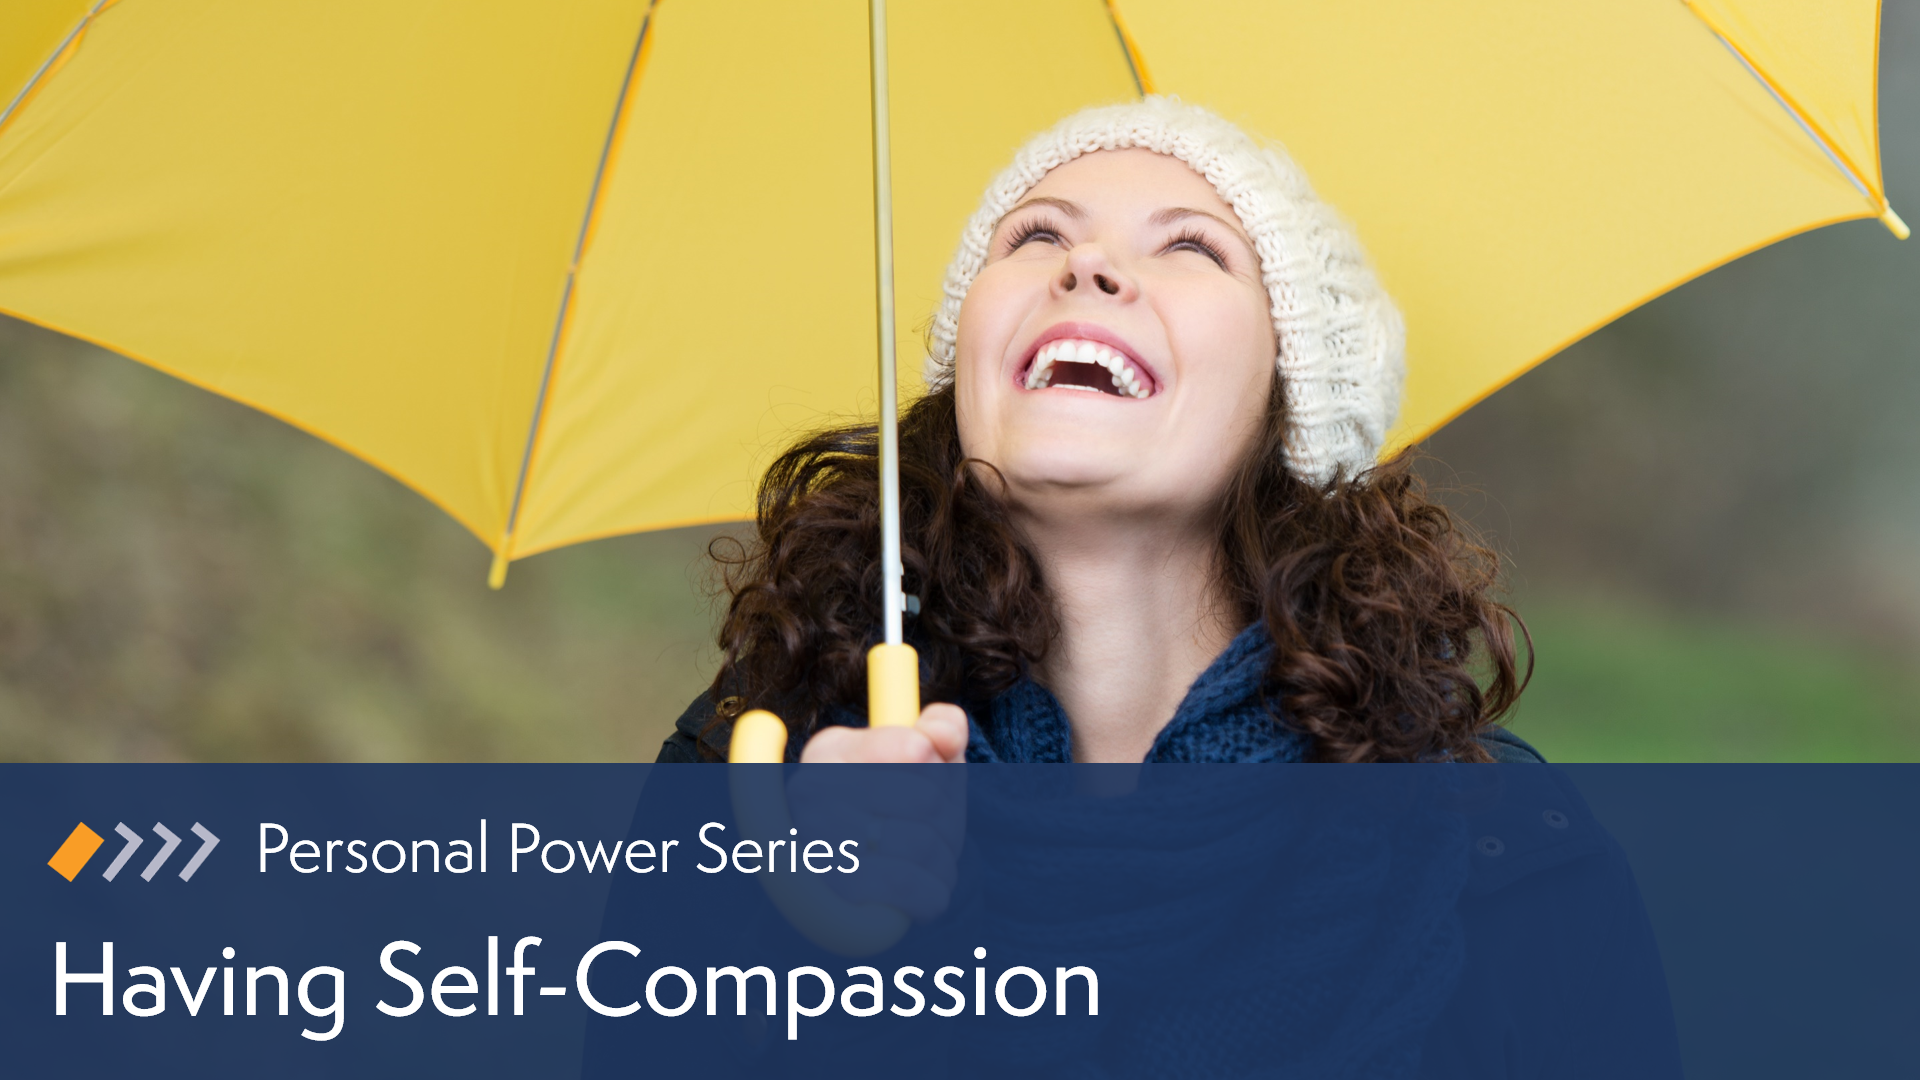 Personal Power: Having Self-Compassion